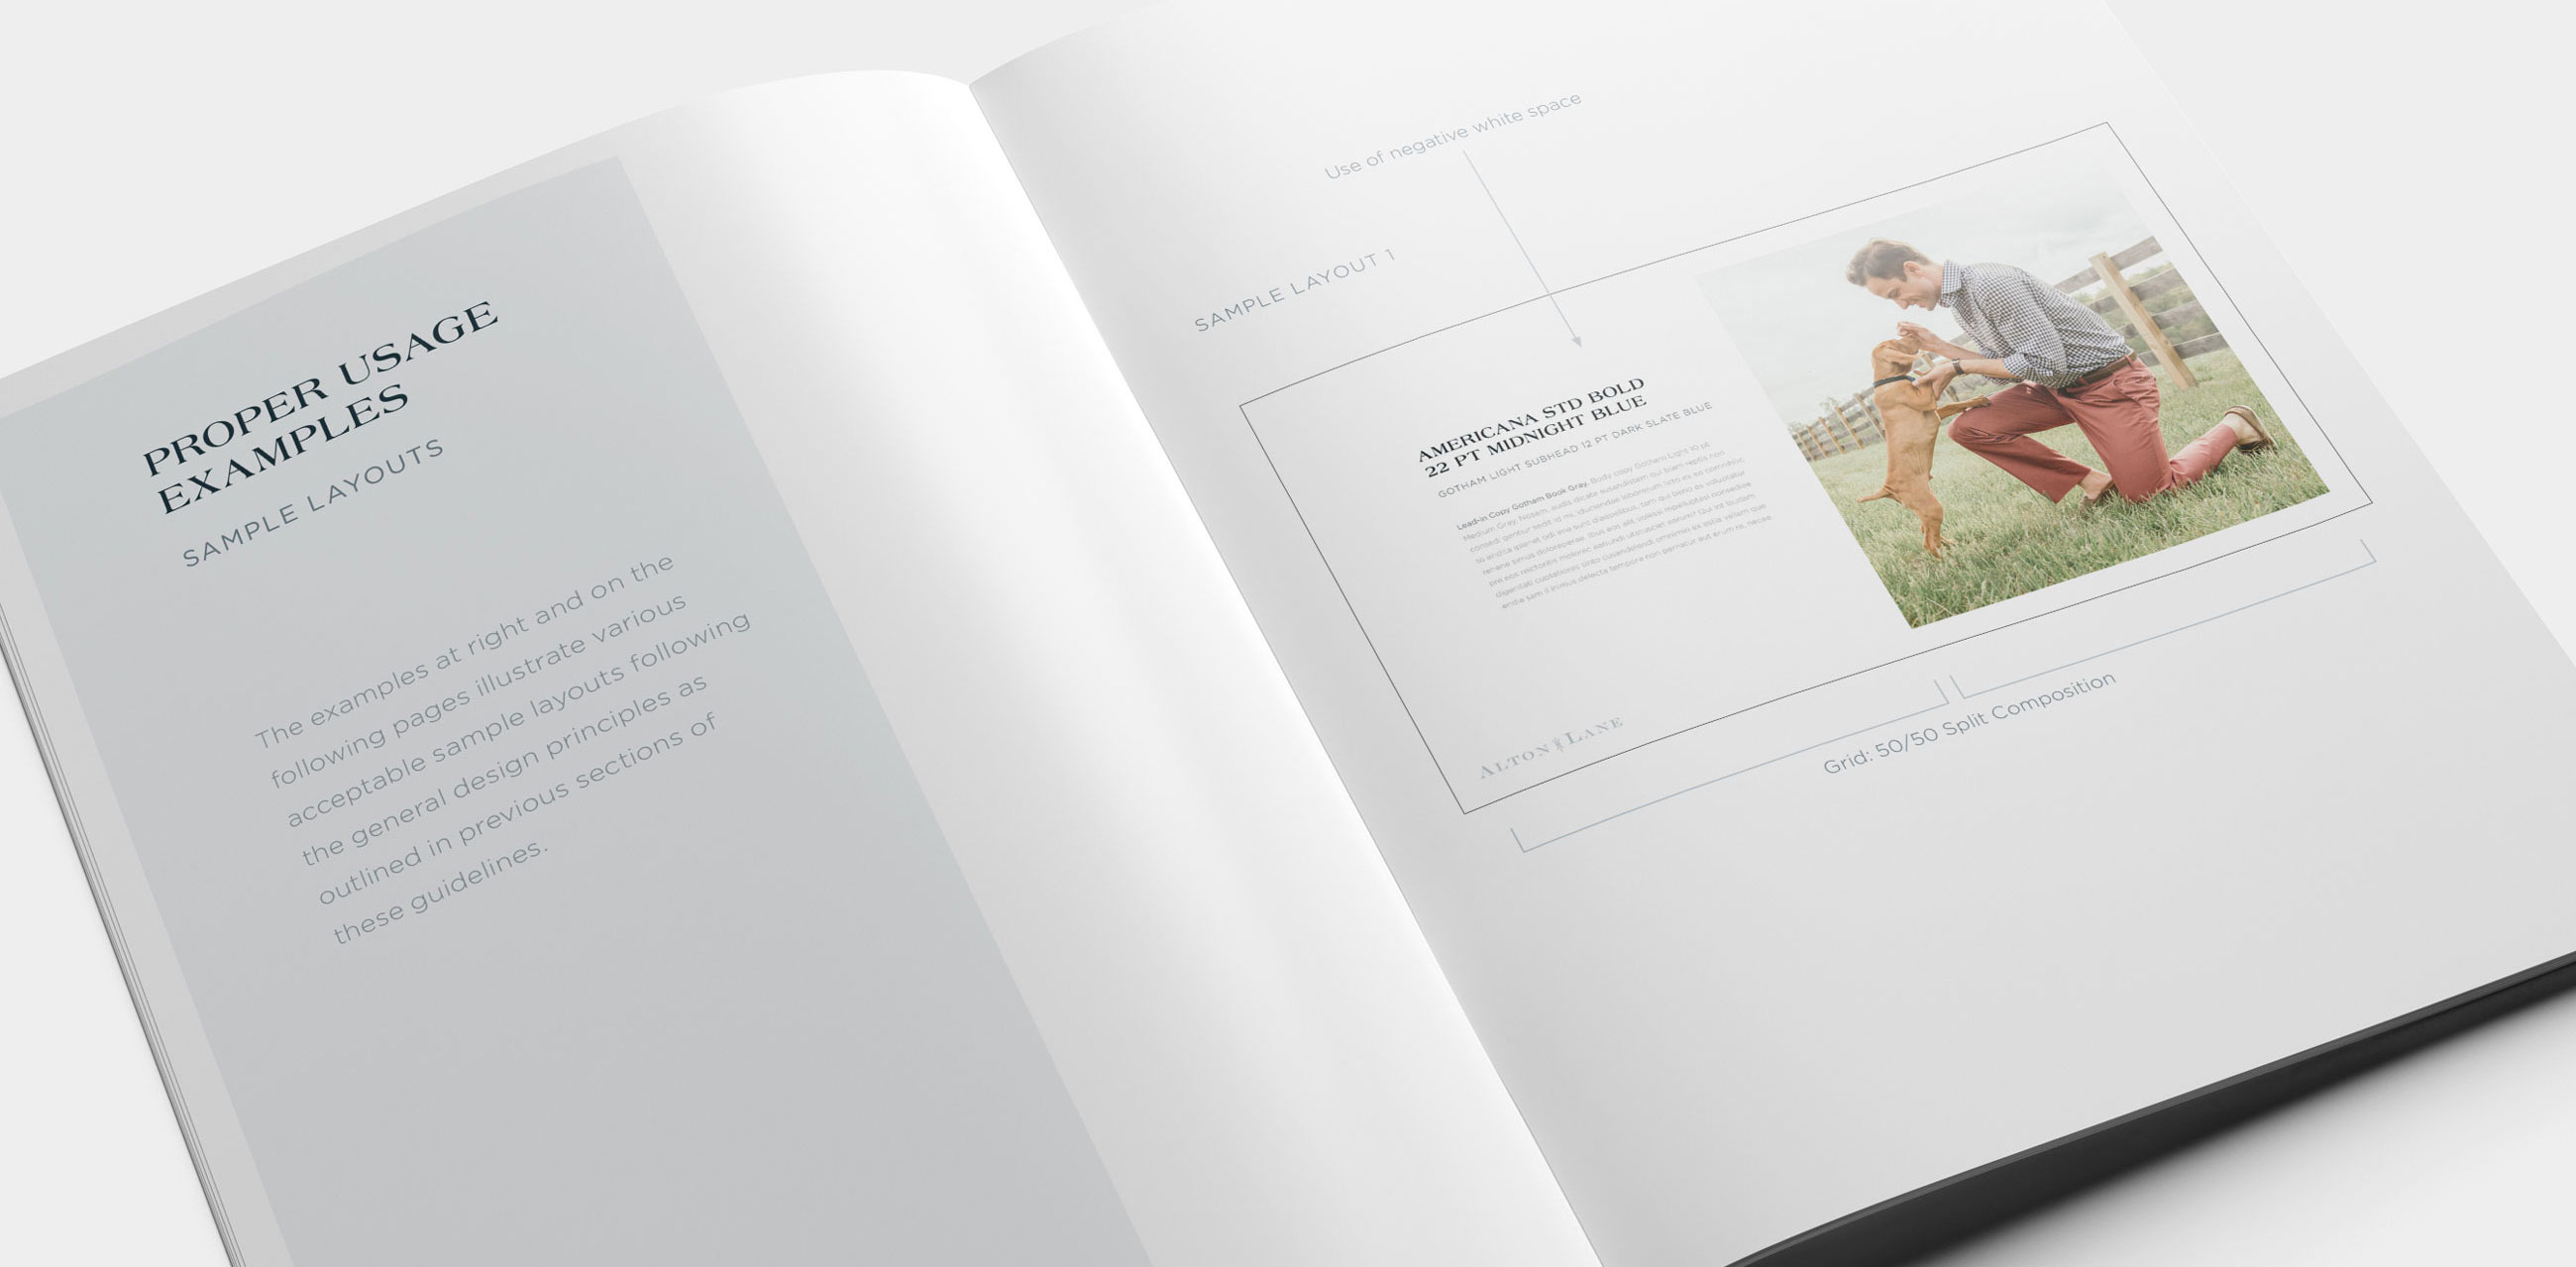 Style guide usage examples